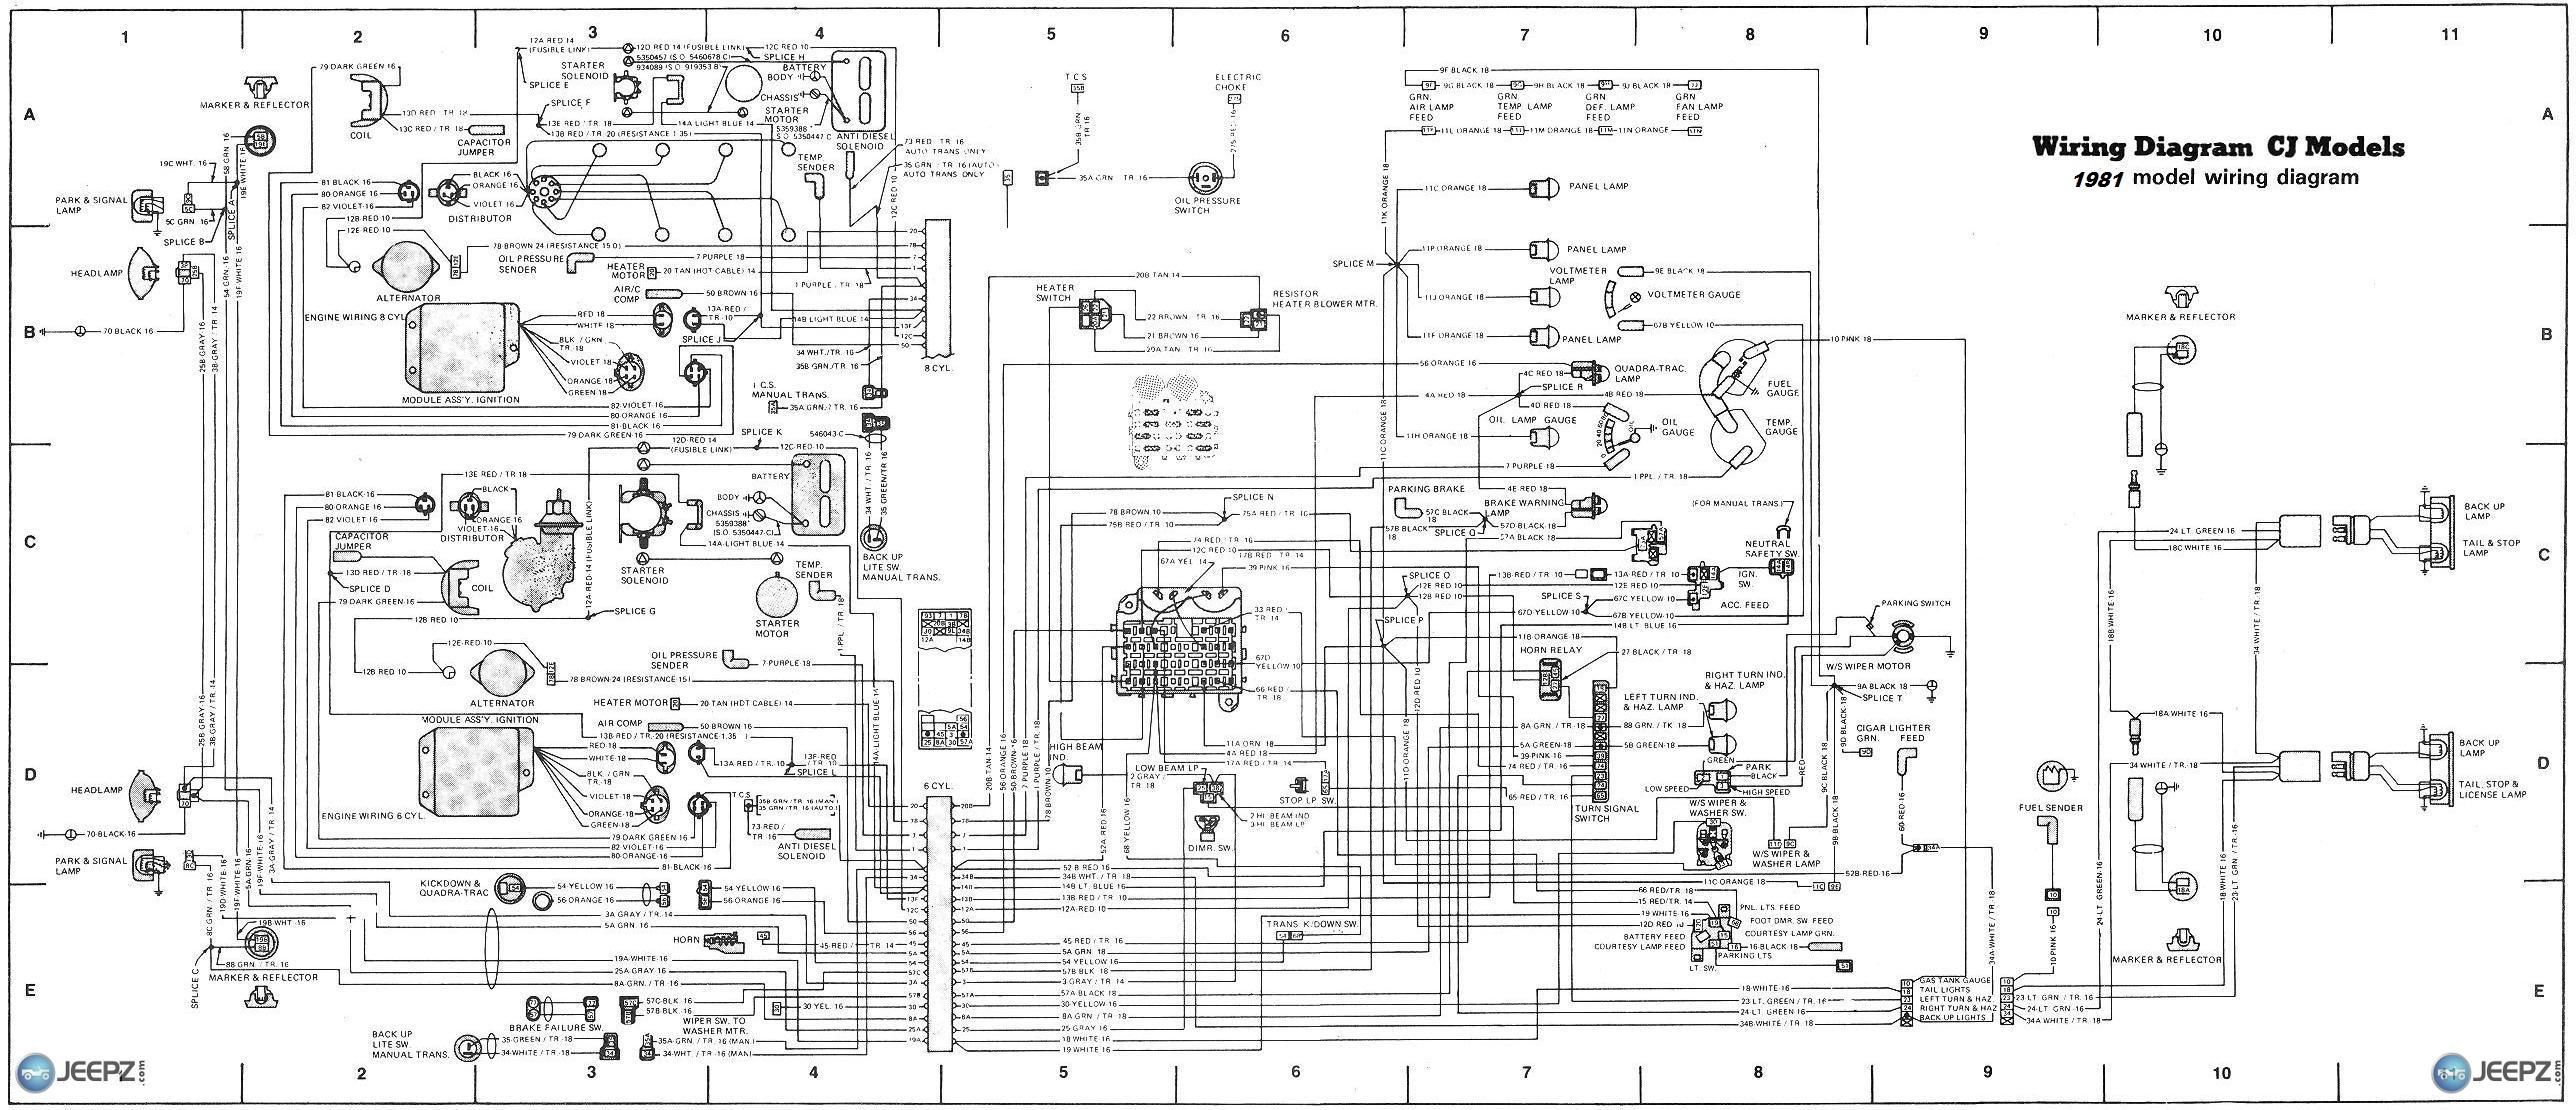 Cj Wiring Diagram -Wiring Harness 2008 Zx14 | Bege Place Wiring Diagram